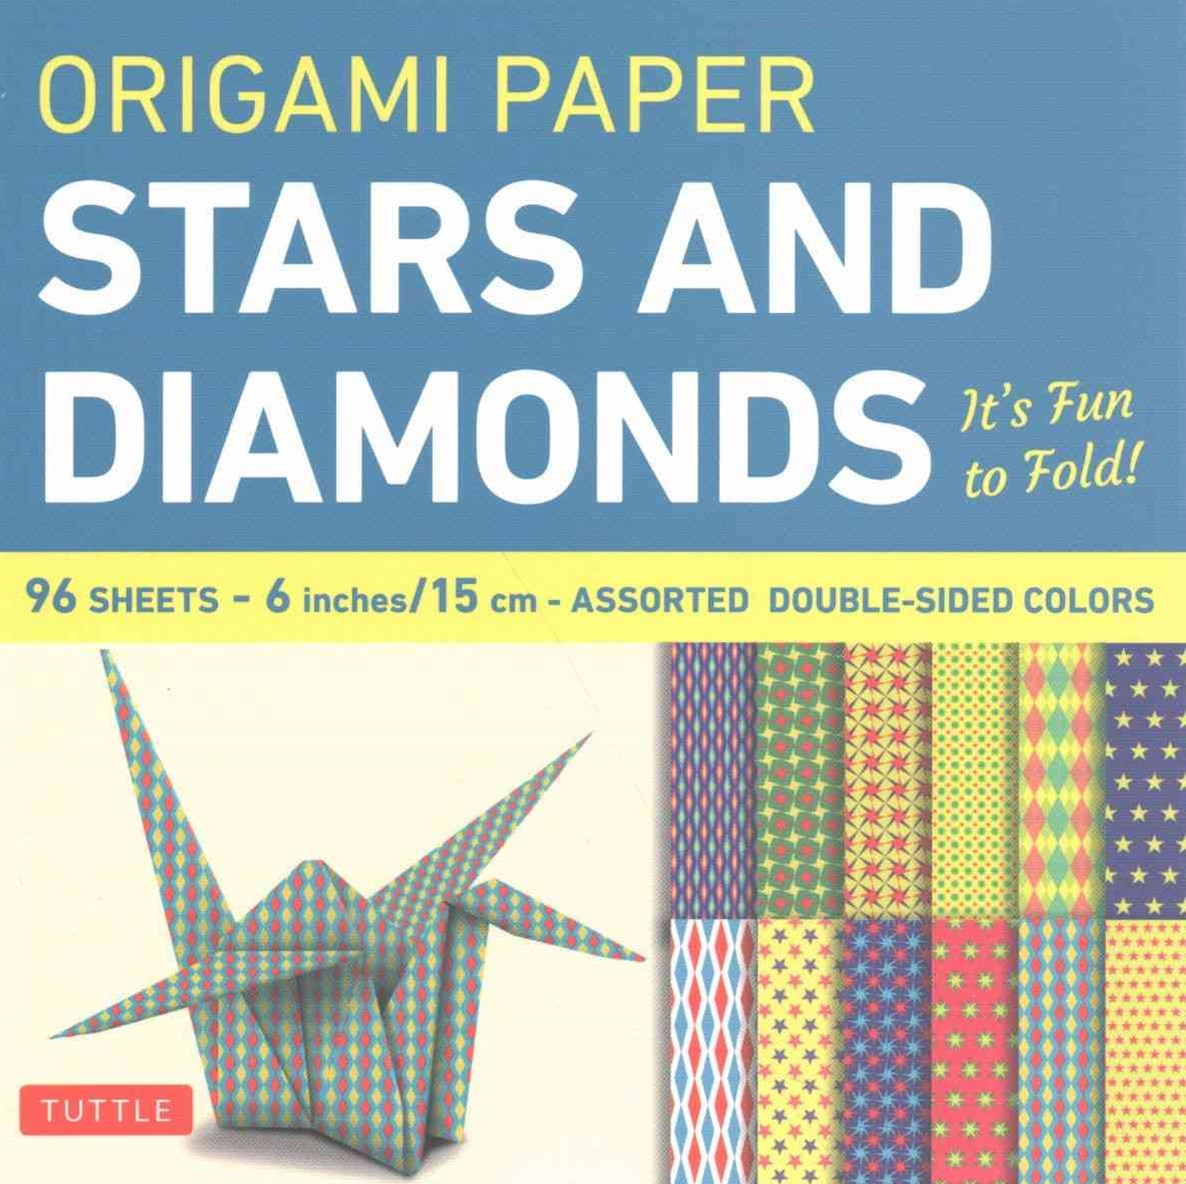 Origami Paper Stars and Diamonds